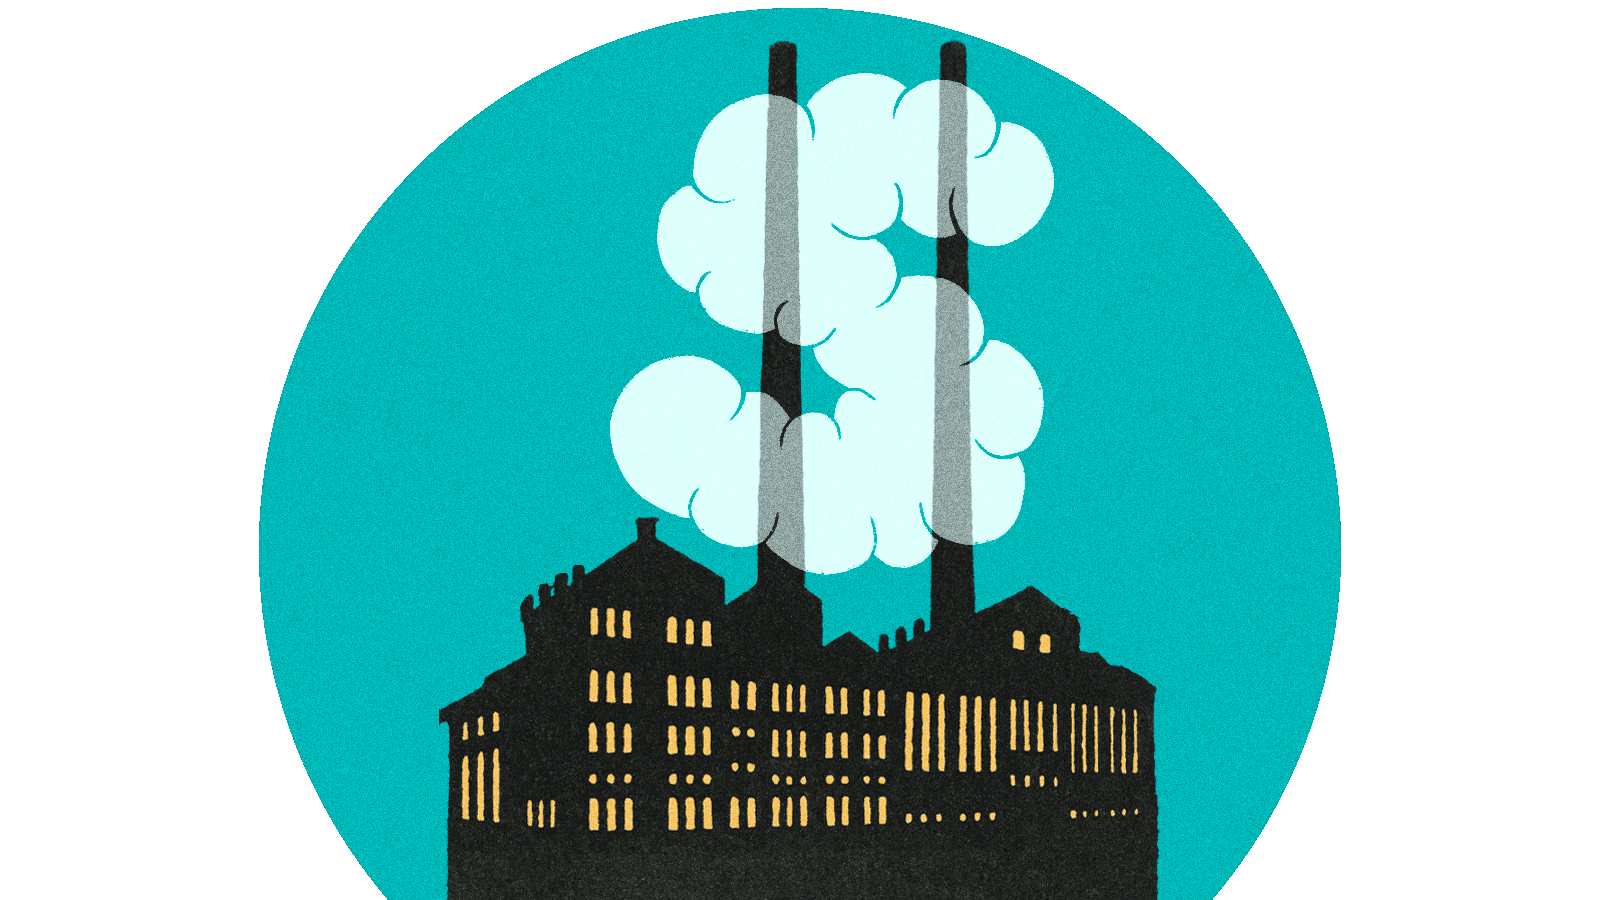 Illustration of silhouetted factory with smokestacks and clouds forming a dollar sign